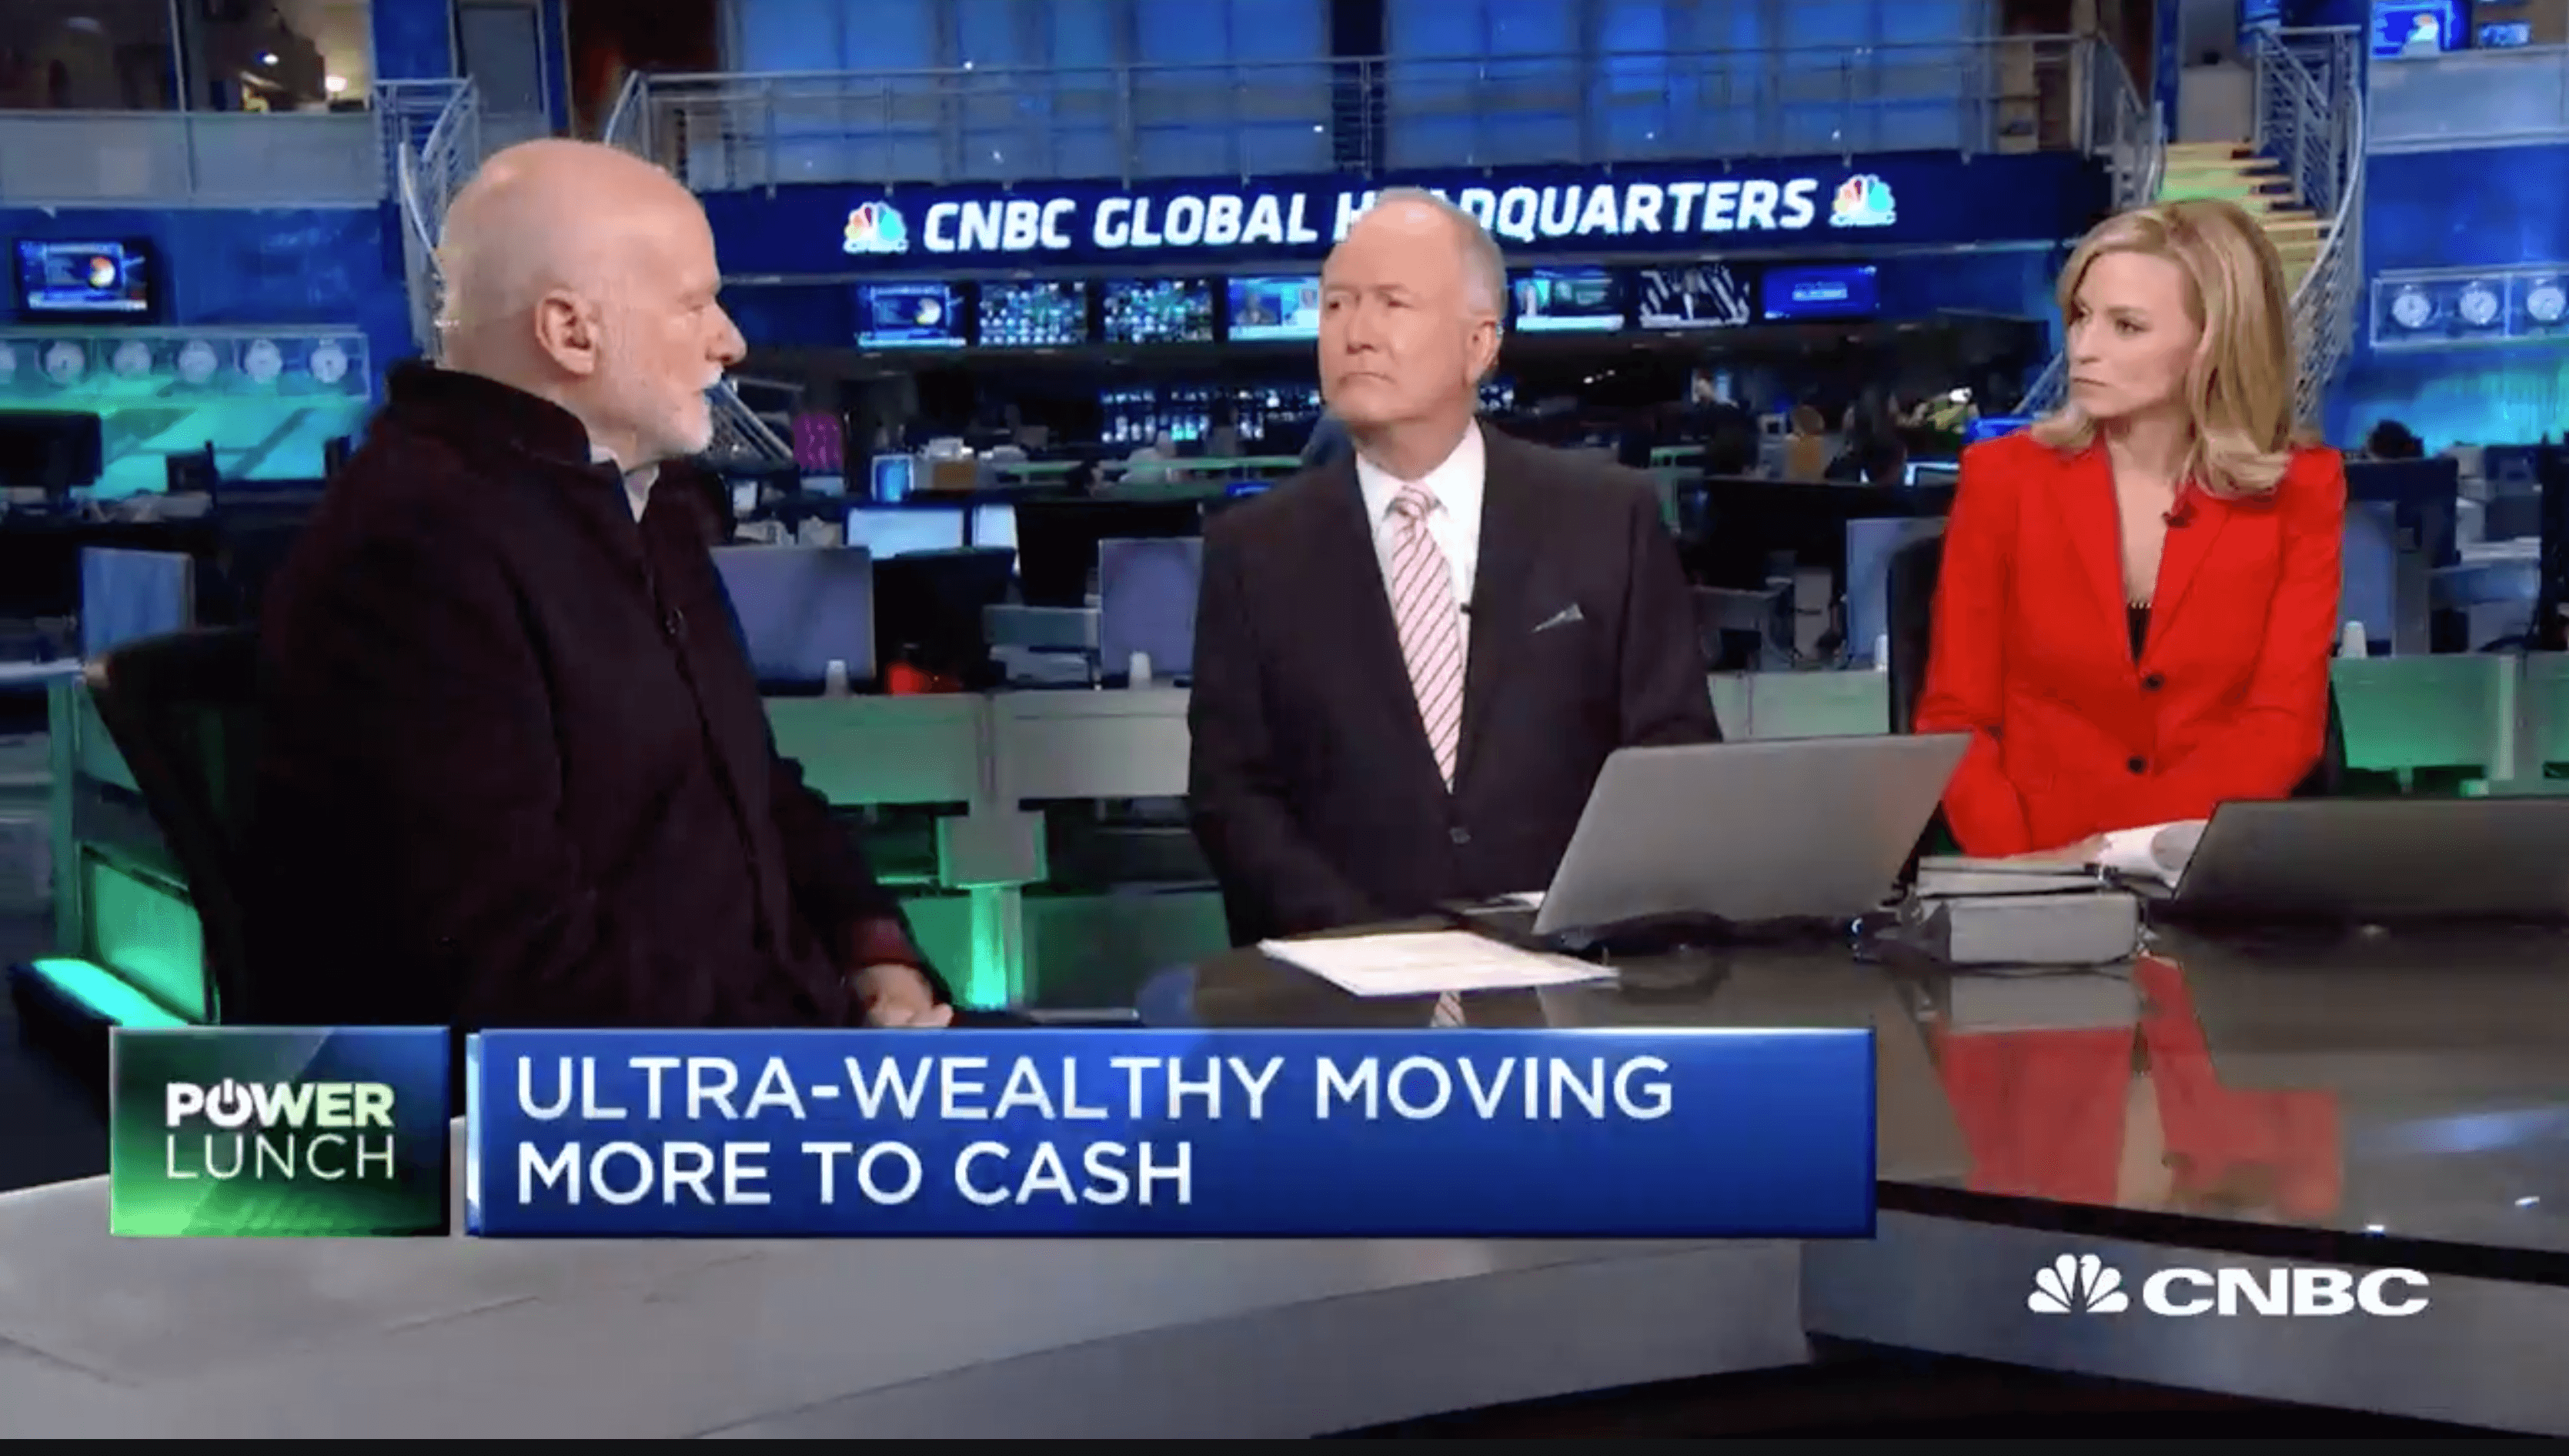 TIGER 21 FOUNDER DISCUSSES ON CNBC THE ASSET ALLOCATION OF THE ULTRA-WEALTHY